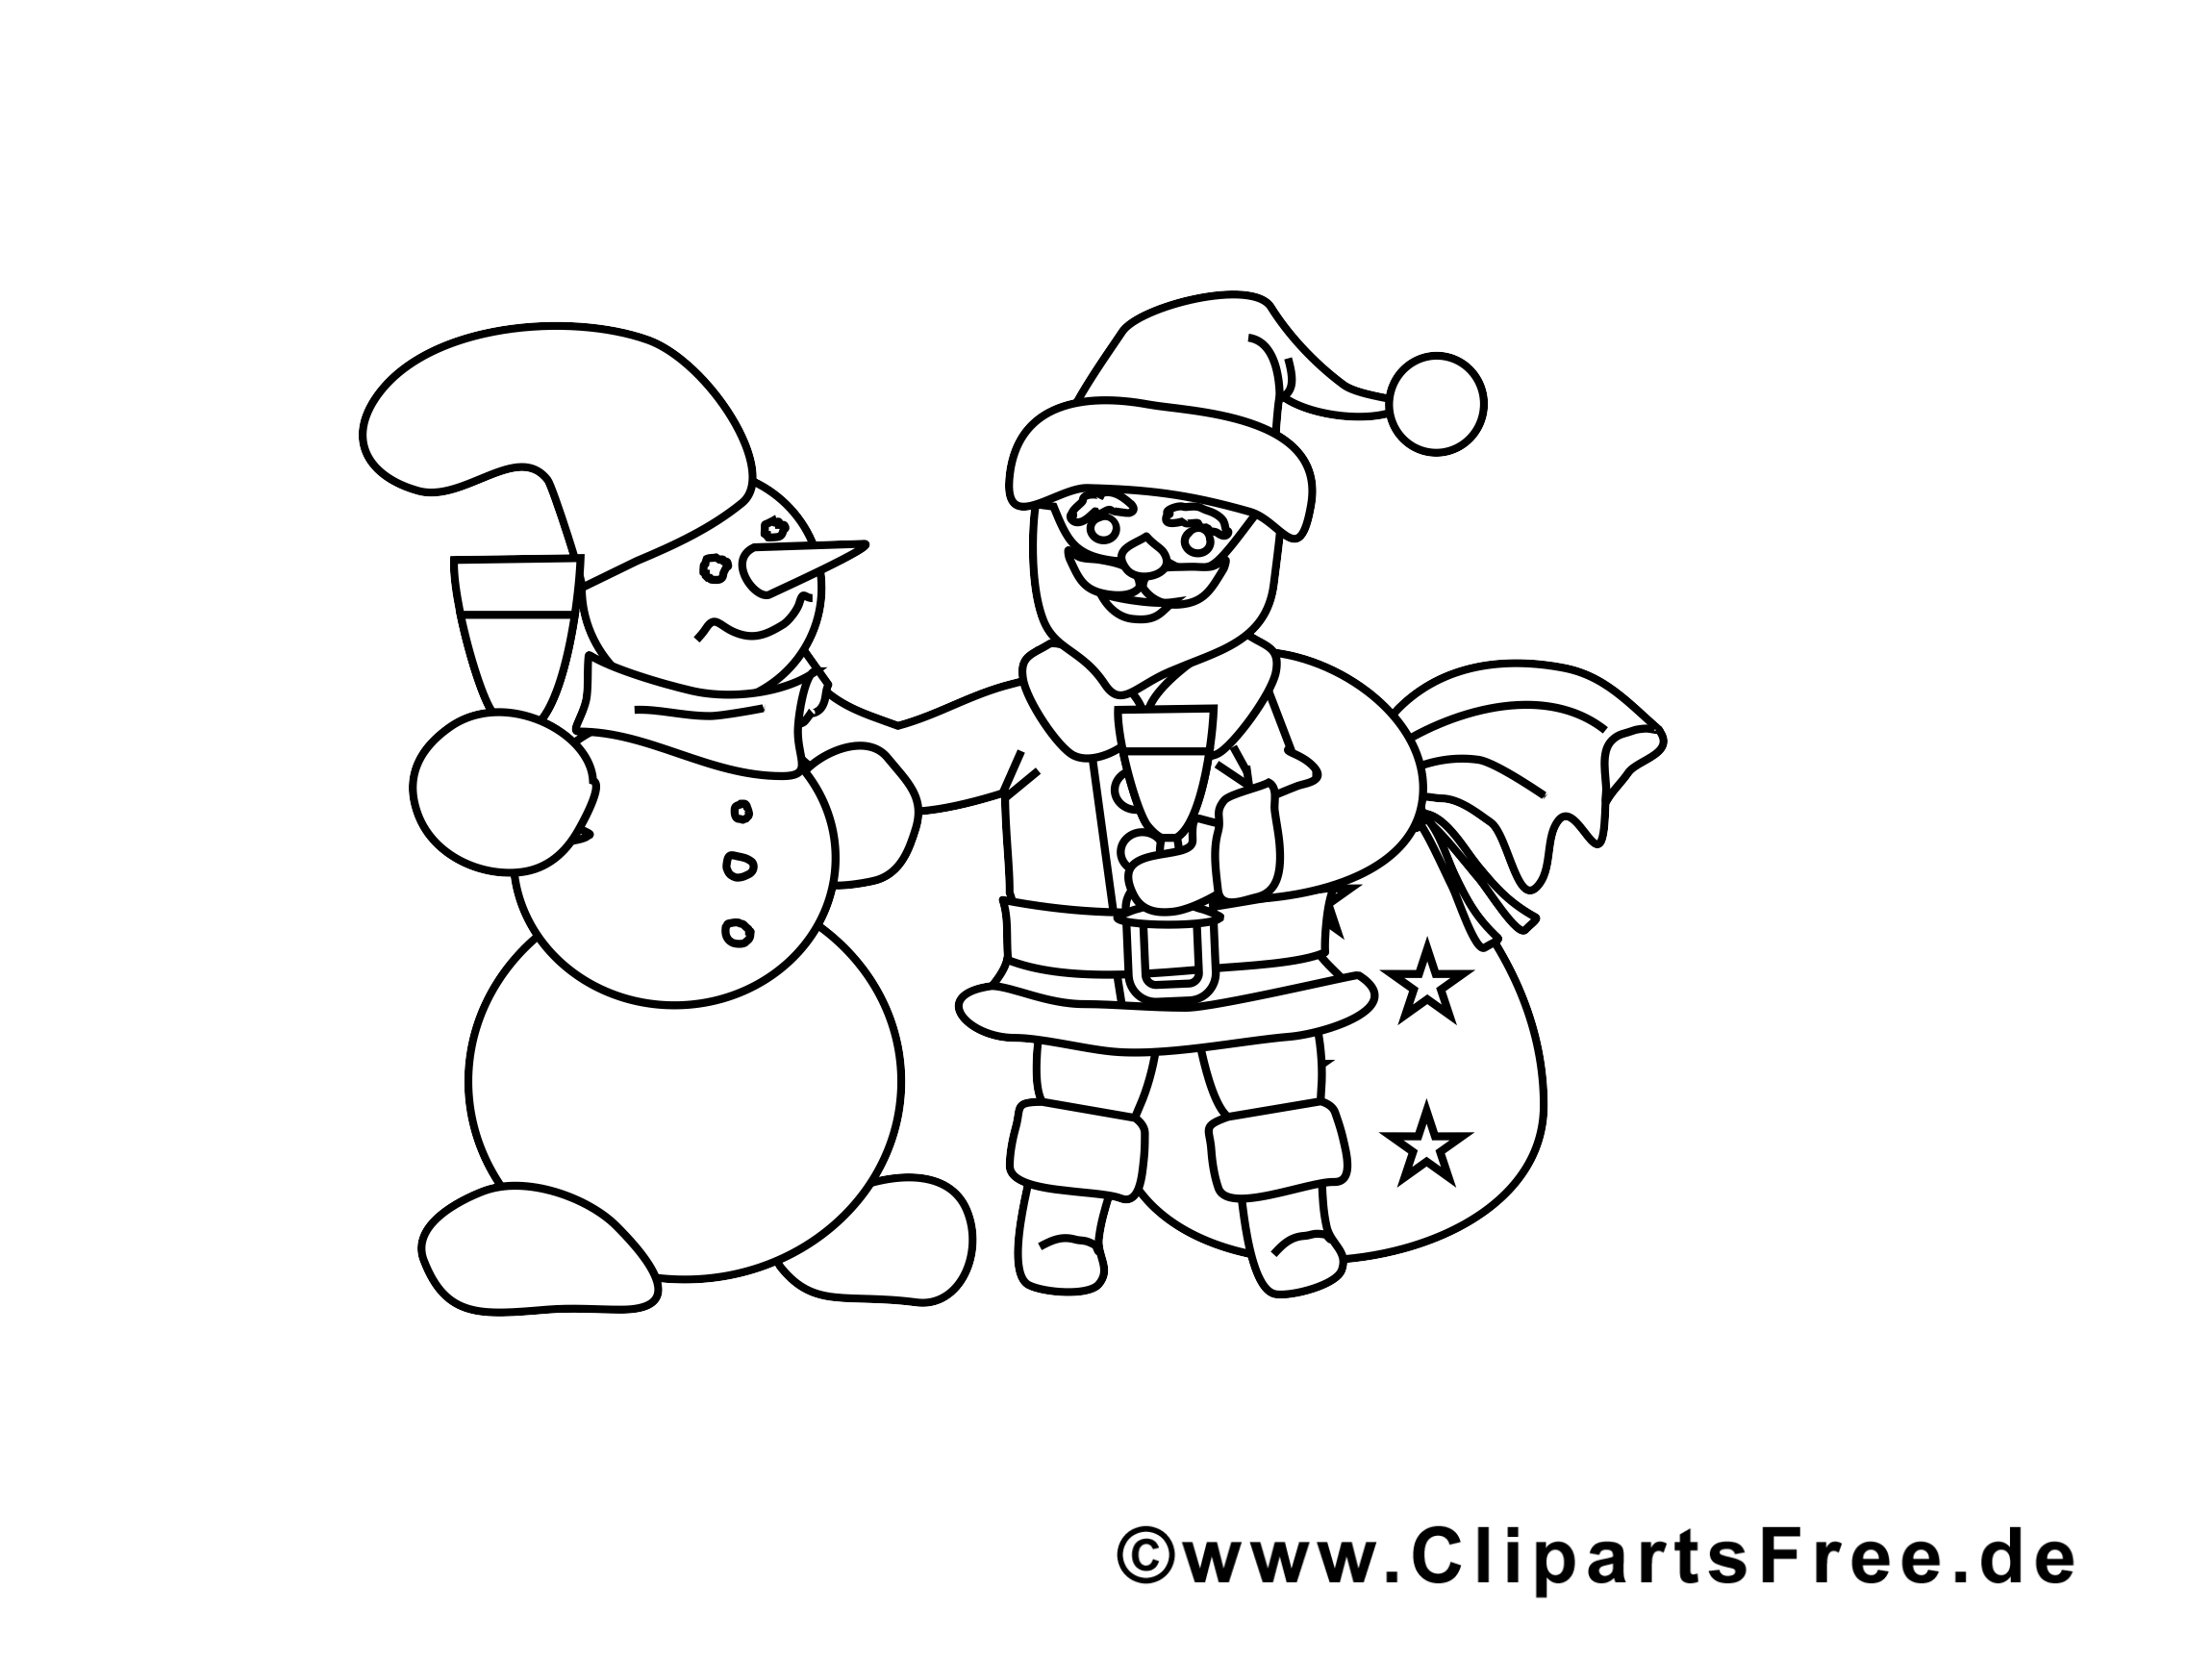 Coloriage p re noel gratuit cartes de no l dessin picture image graphic clip art - Clipart pere noel gratuit ...